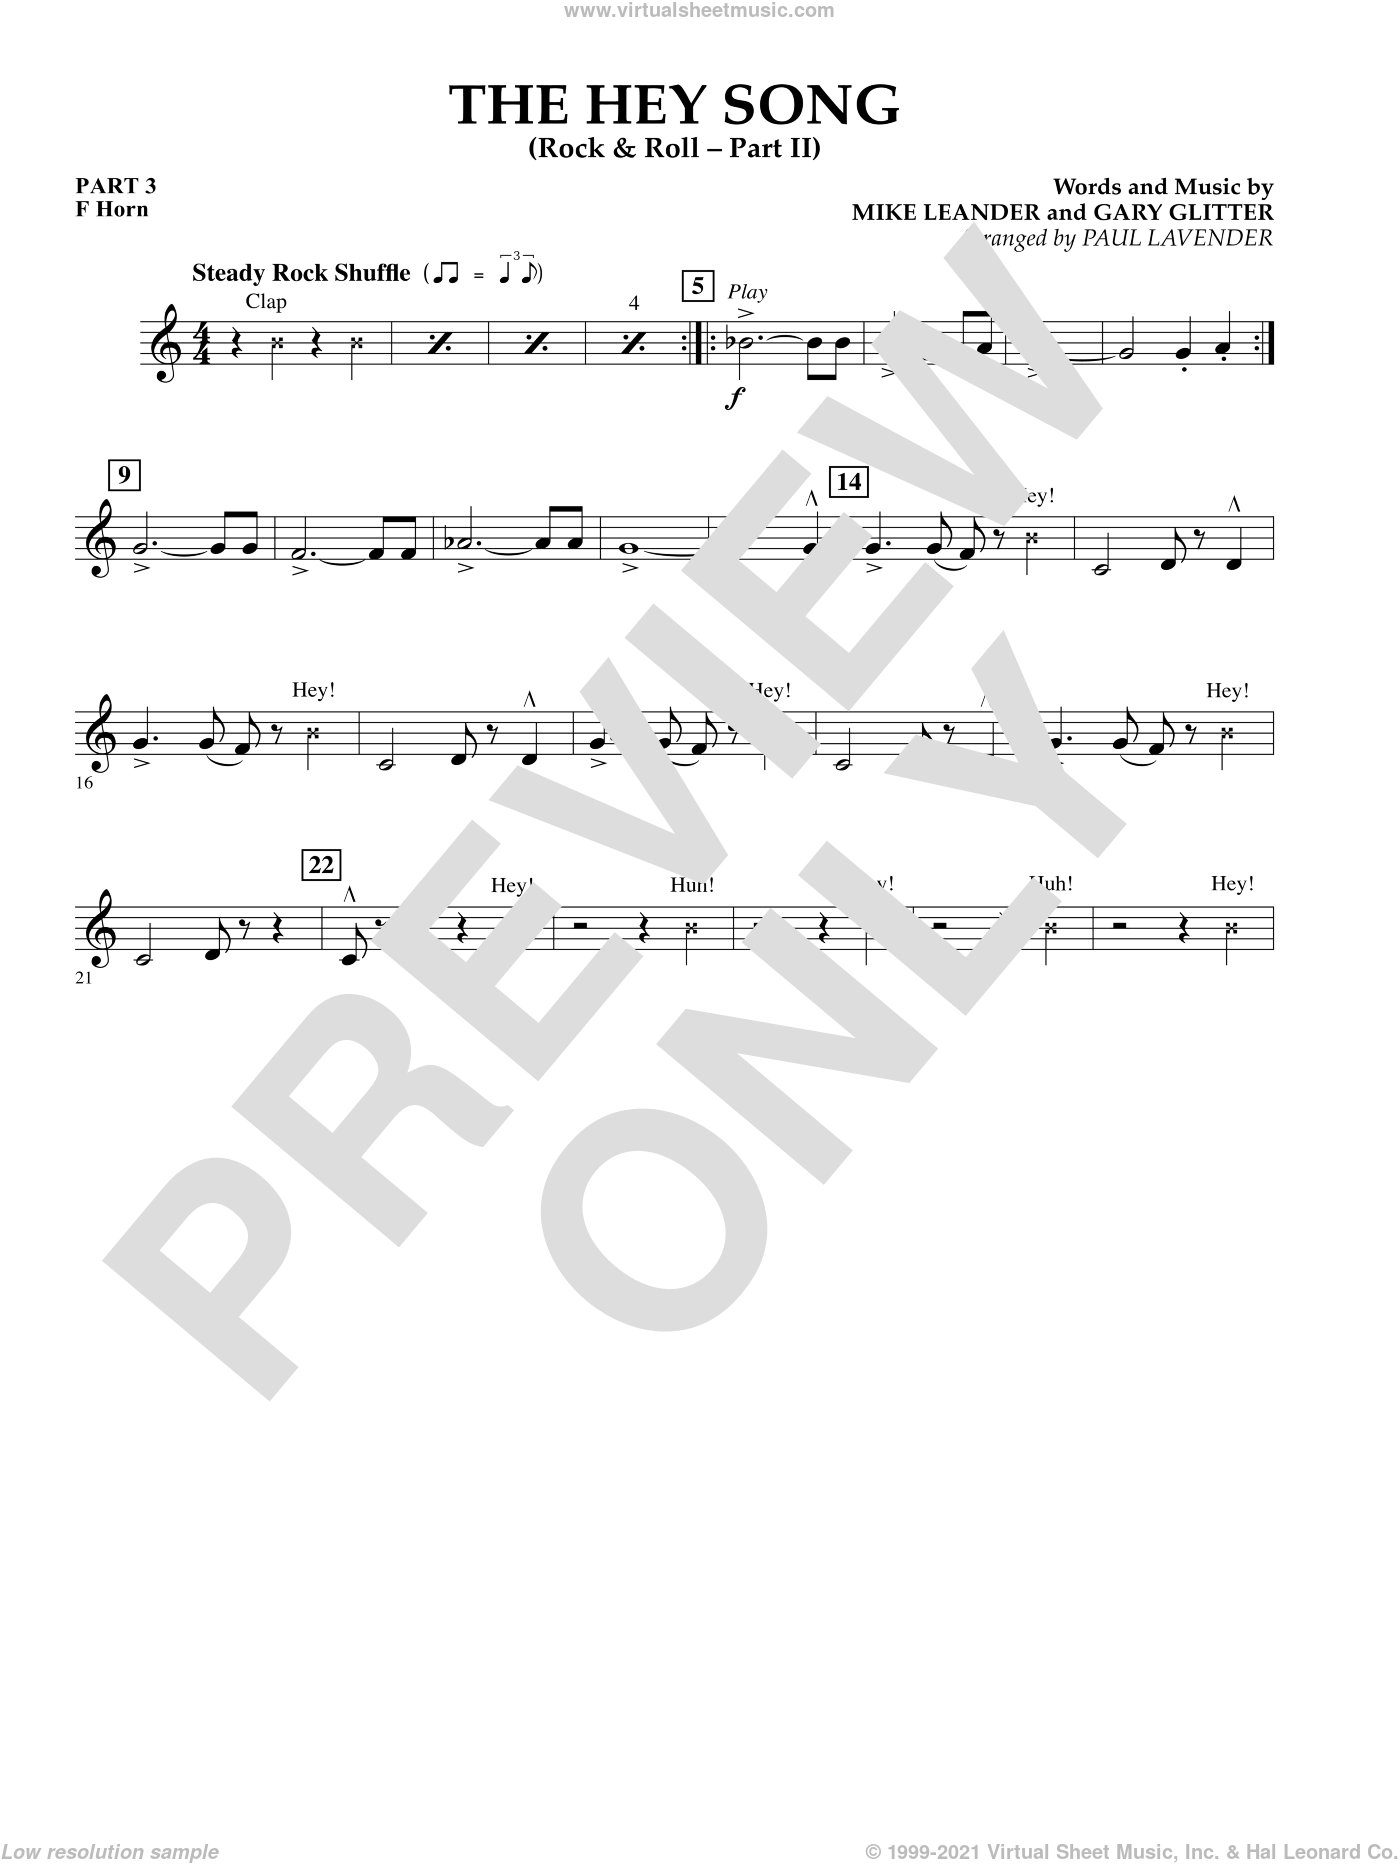 The Hey Song (Rock and Roll Part II) (Flex-Band) sheet music for concert band (pt.3 - f horn) by Gary Glitter, Paul Lavender and Mike Leander, intermediate skill level